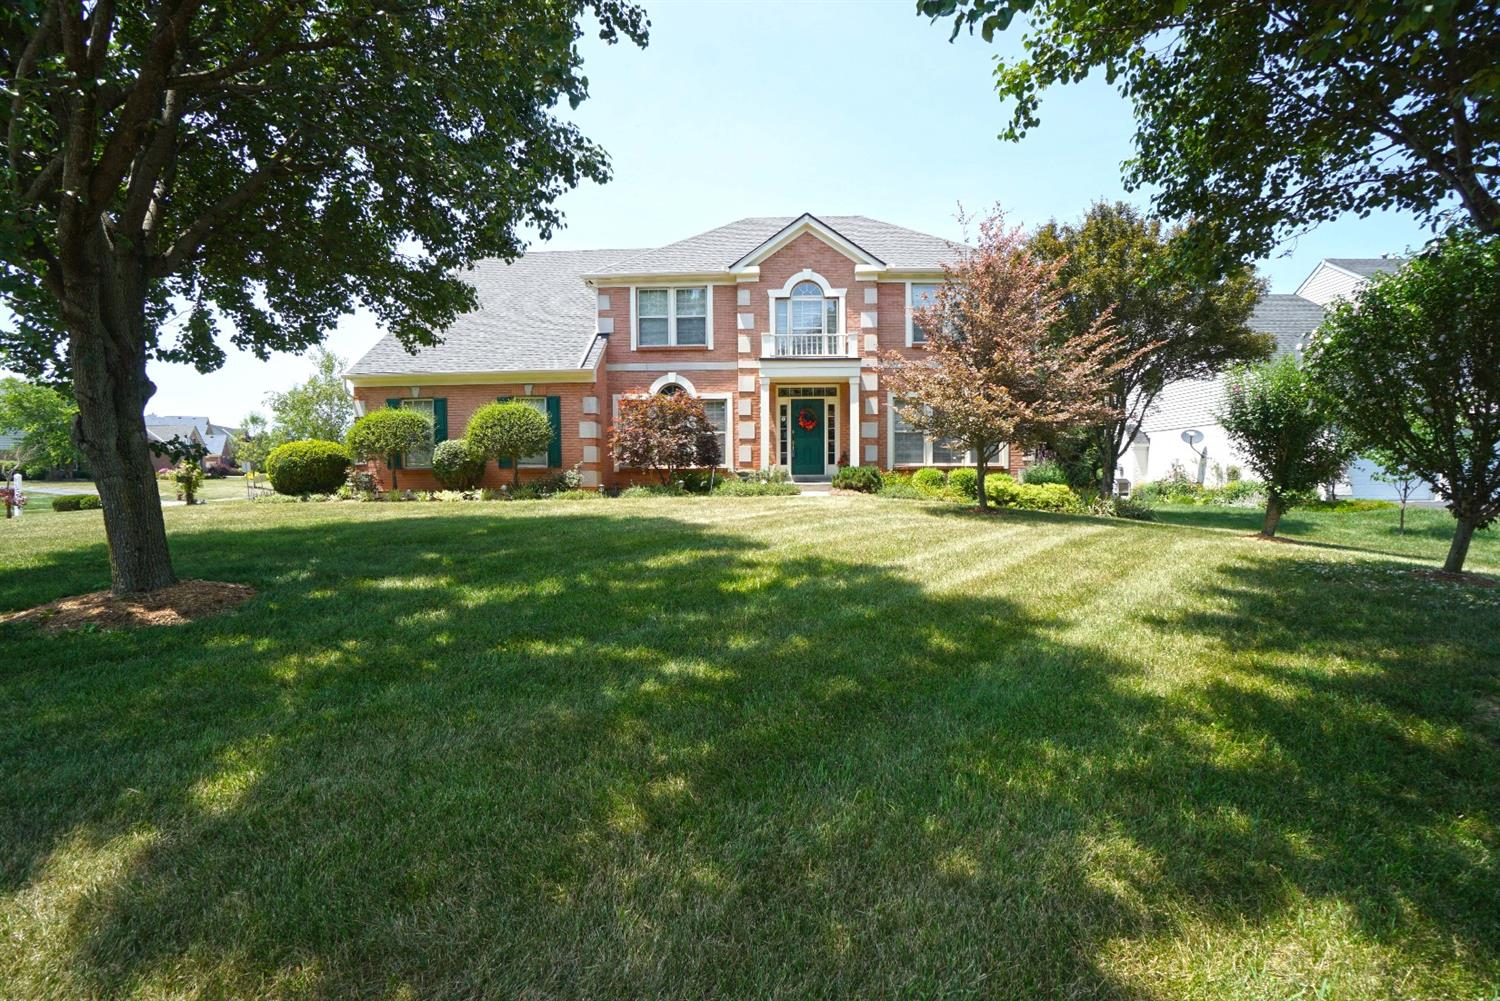 975 Paxton Lake Dr Miami Twp. (East), OH